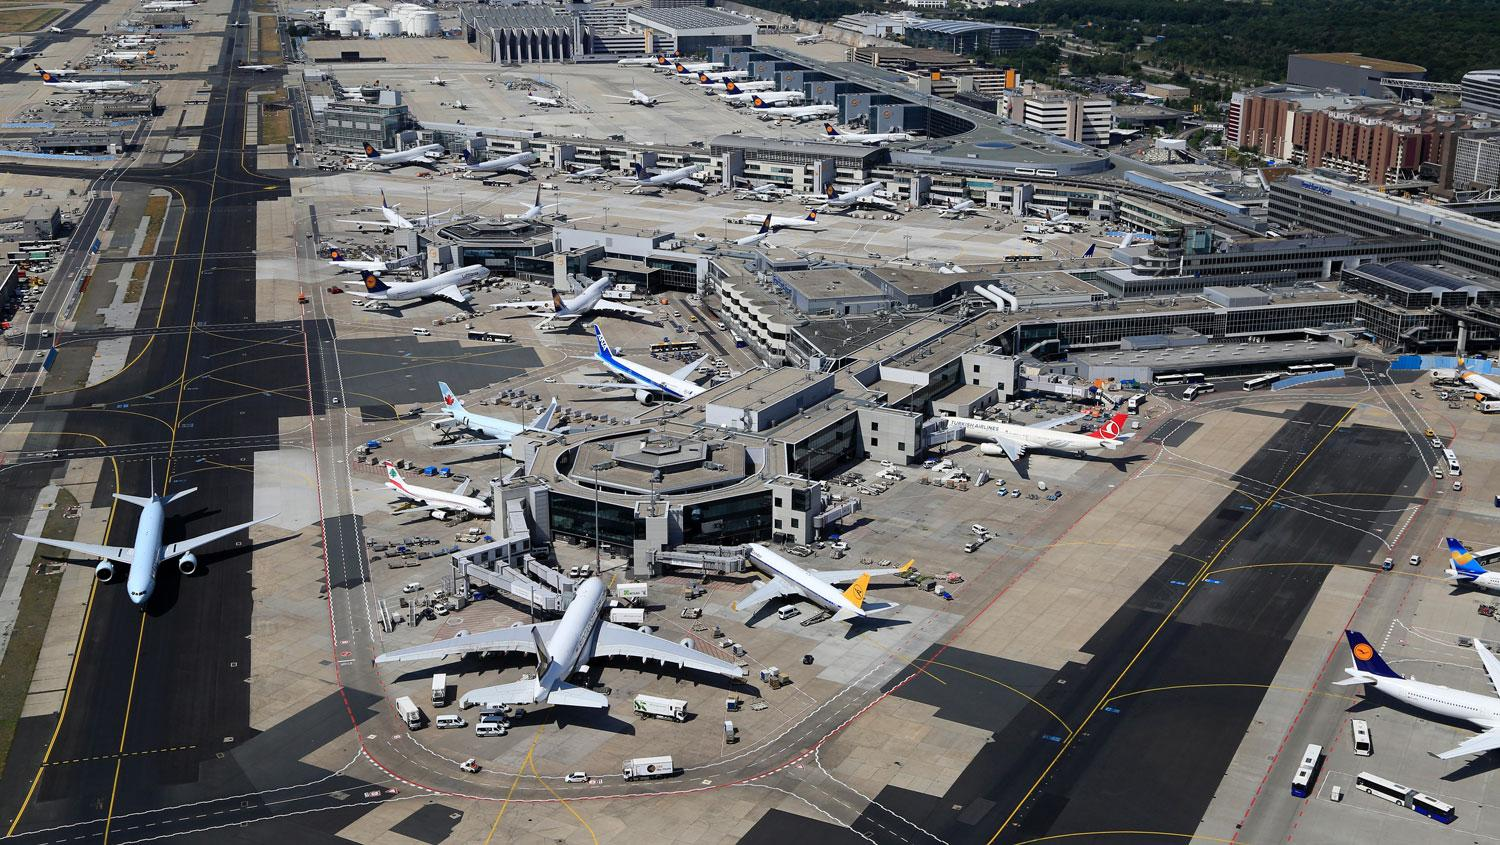 Frankfurt Airport is Lufthansa's main hub but recently signed a deal with low-cost carrier Ryanair.